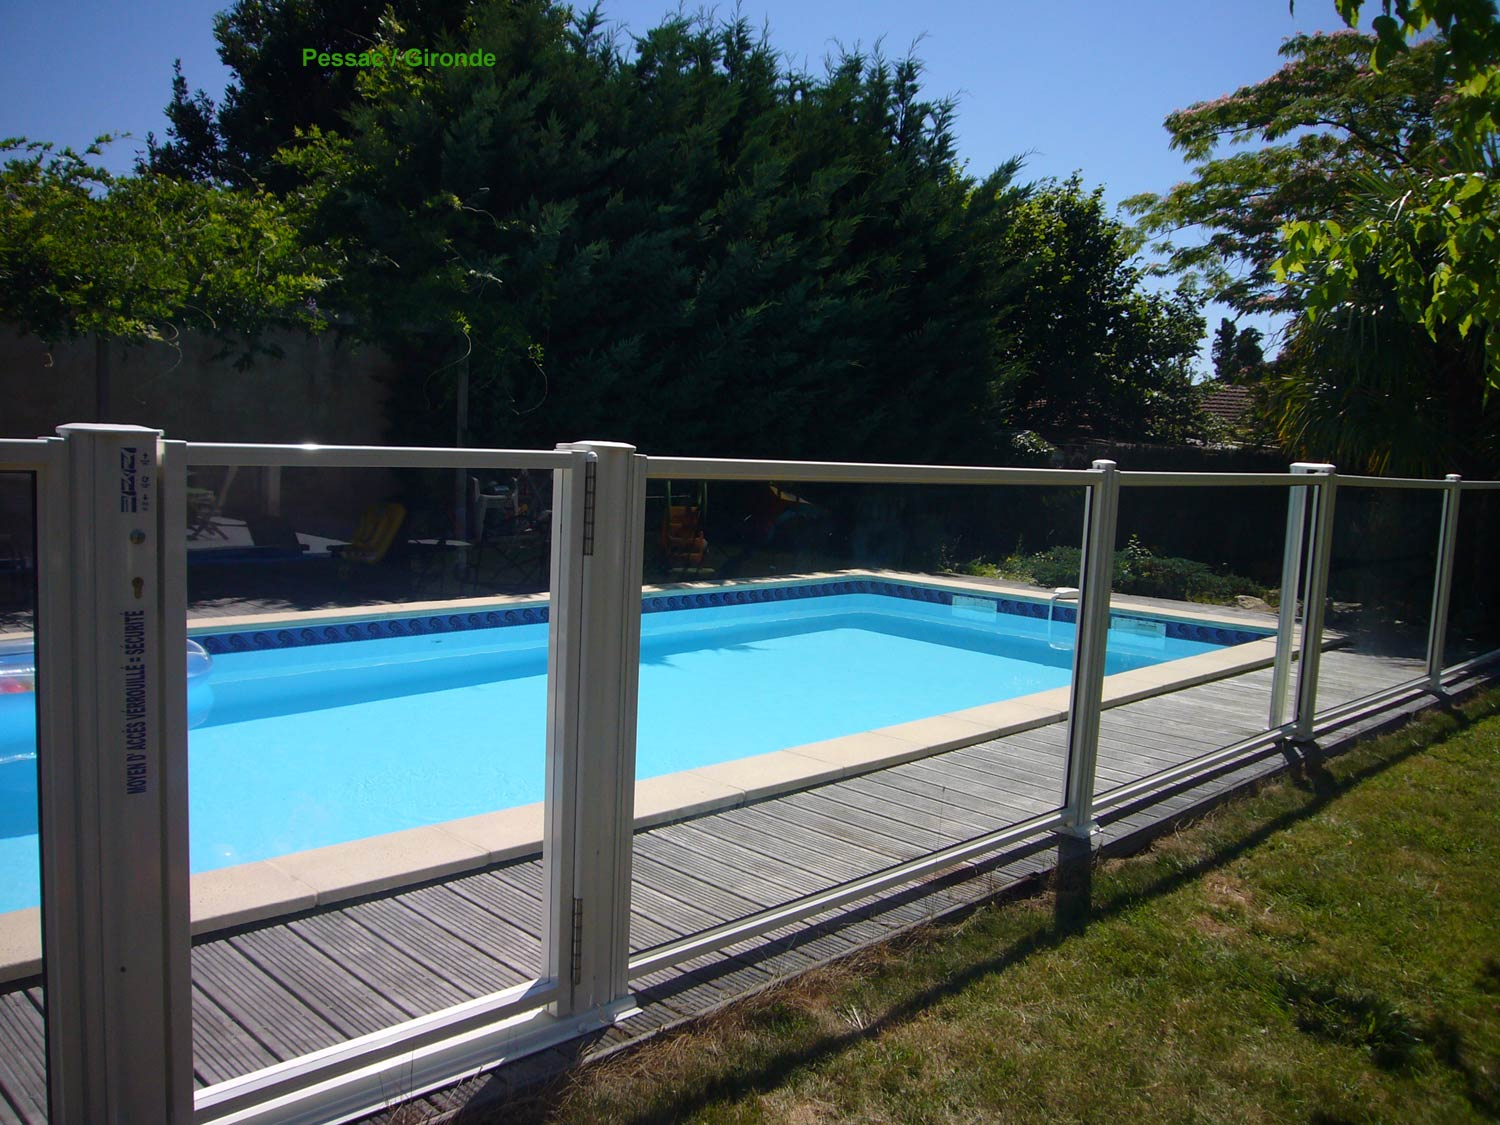 Barriere de piscine meilleures images d 39 inspiration pour for Barriere piscine